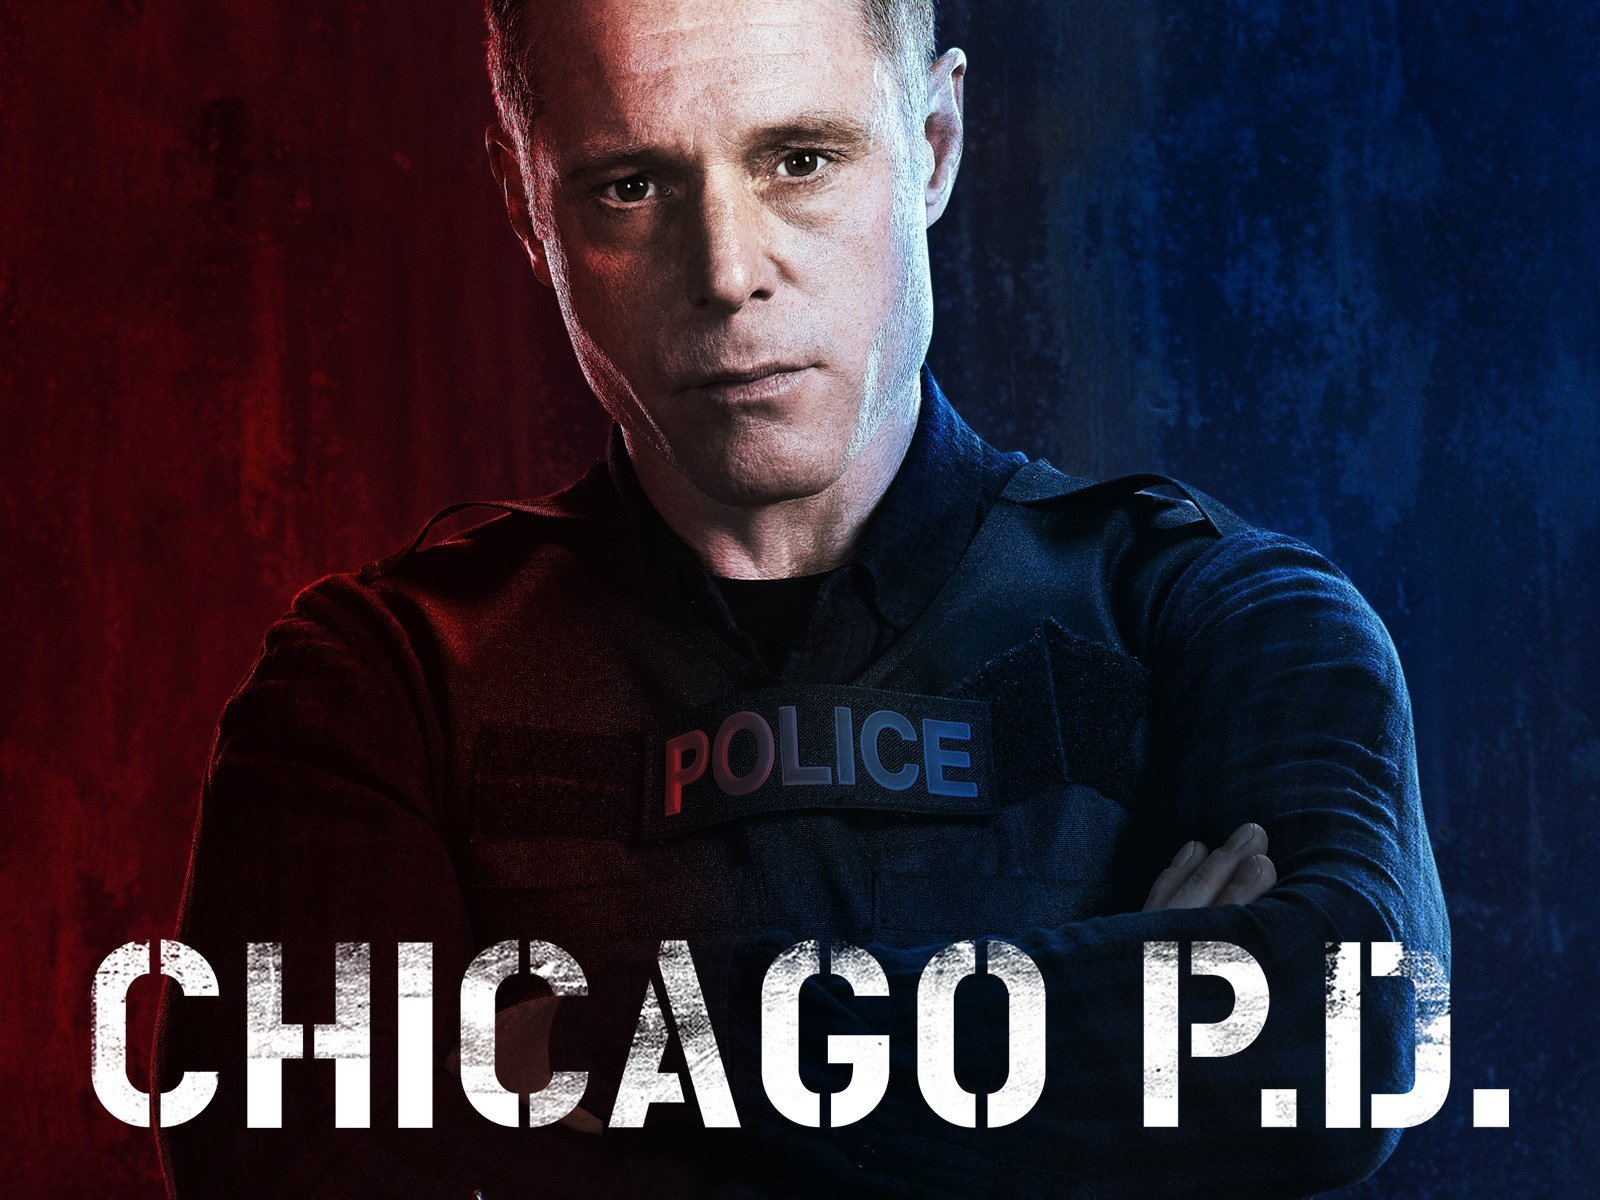 Chicago PD Season 1 on Amazon Prime Video UK